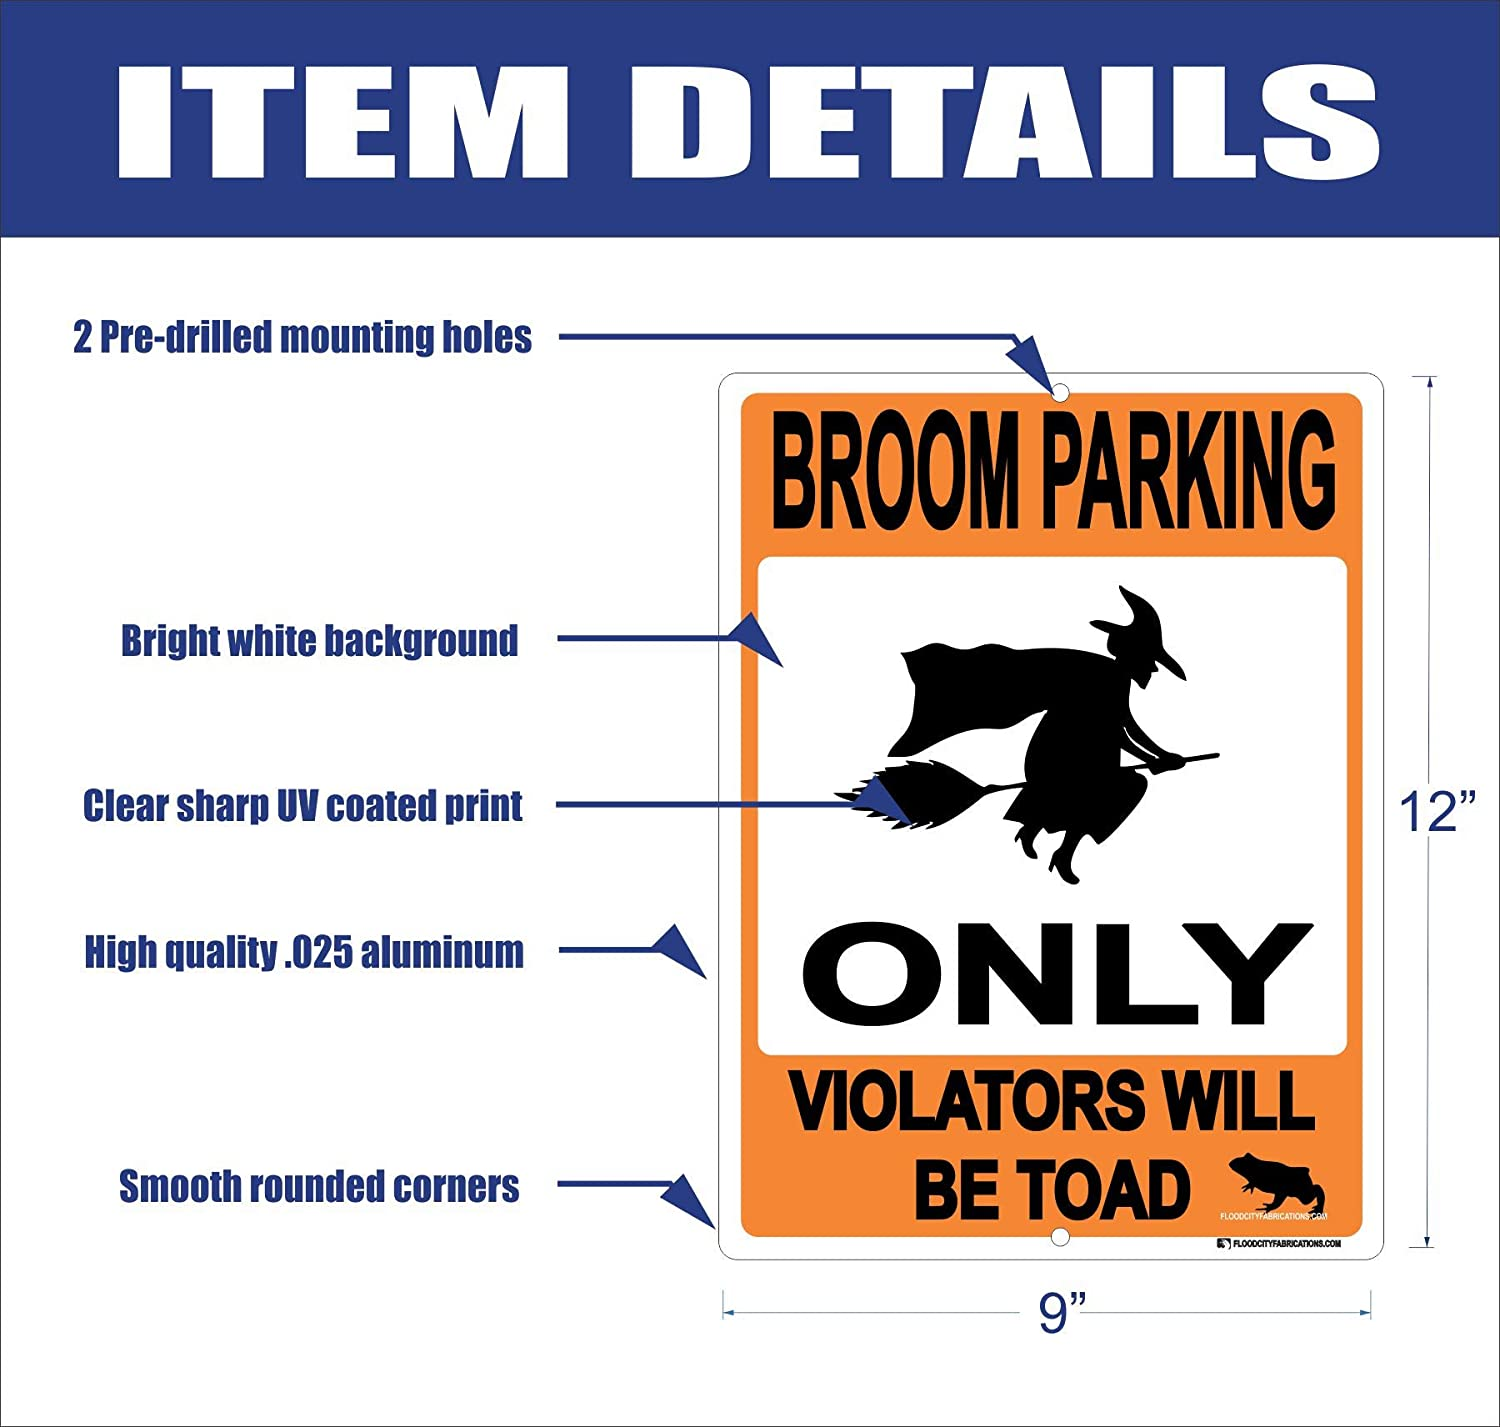 Amazon Com Broom Parking Only All Others Will Be Toad Halloween 9x12 Metal Aluminum Sign Decoration Tick Or Treat Witches Witch Funny